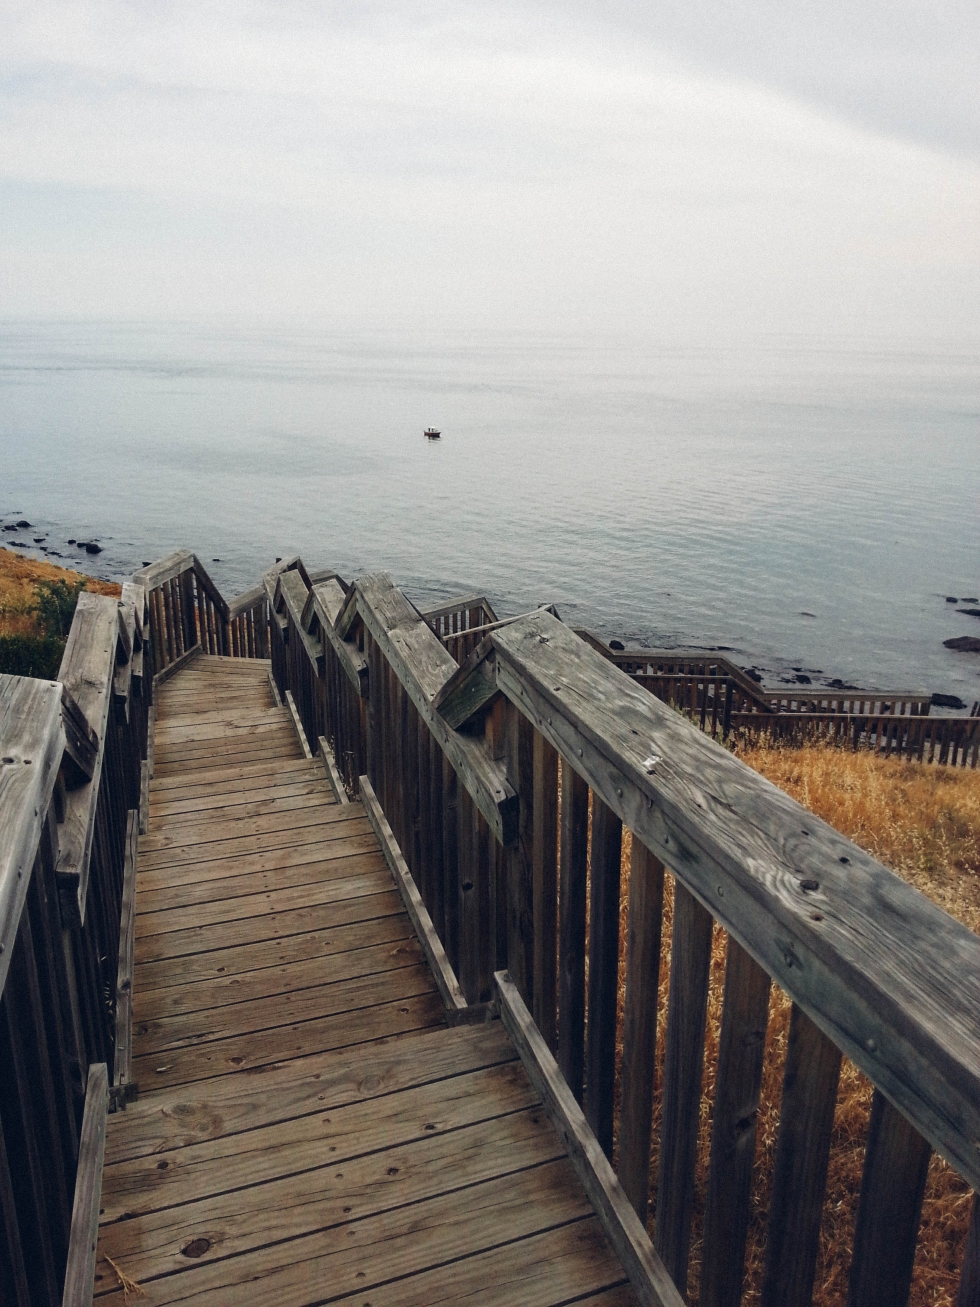 Hallett Cove, Adelaide, Australia   Moments by Charlie   Creative Lifestyle Blog   Art Fashion Lifestyle Photography   Made in Adelaide, Australia